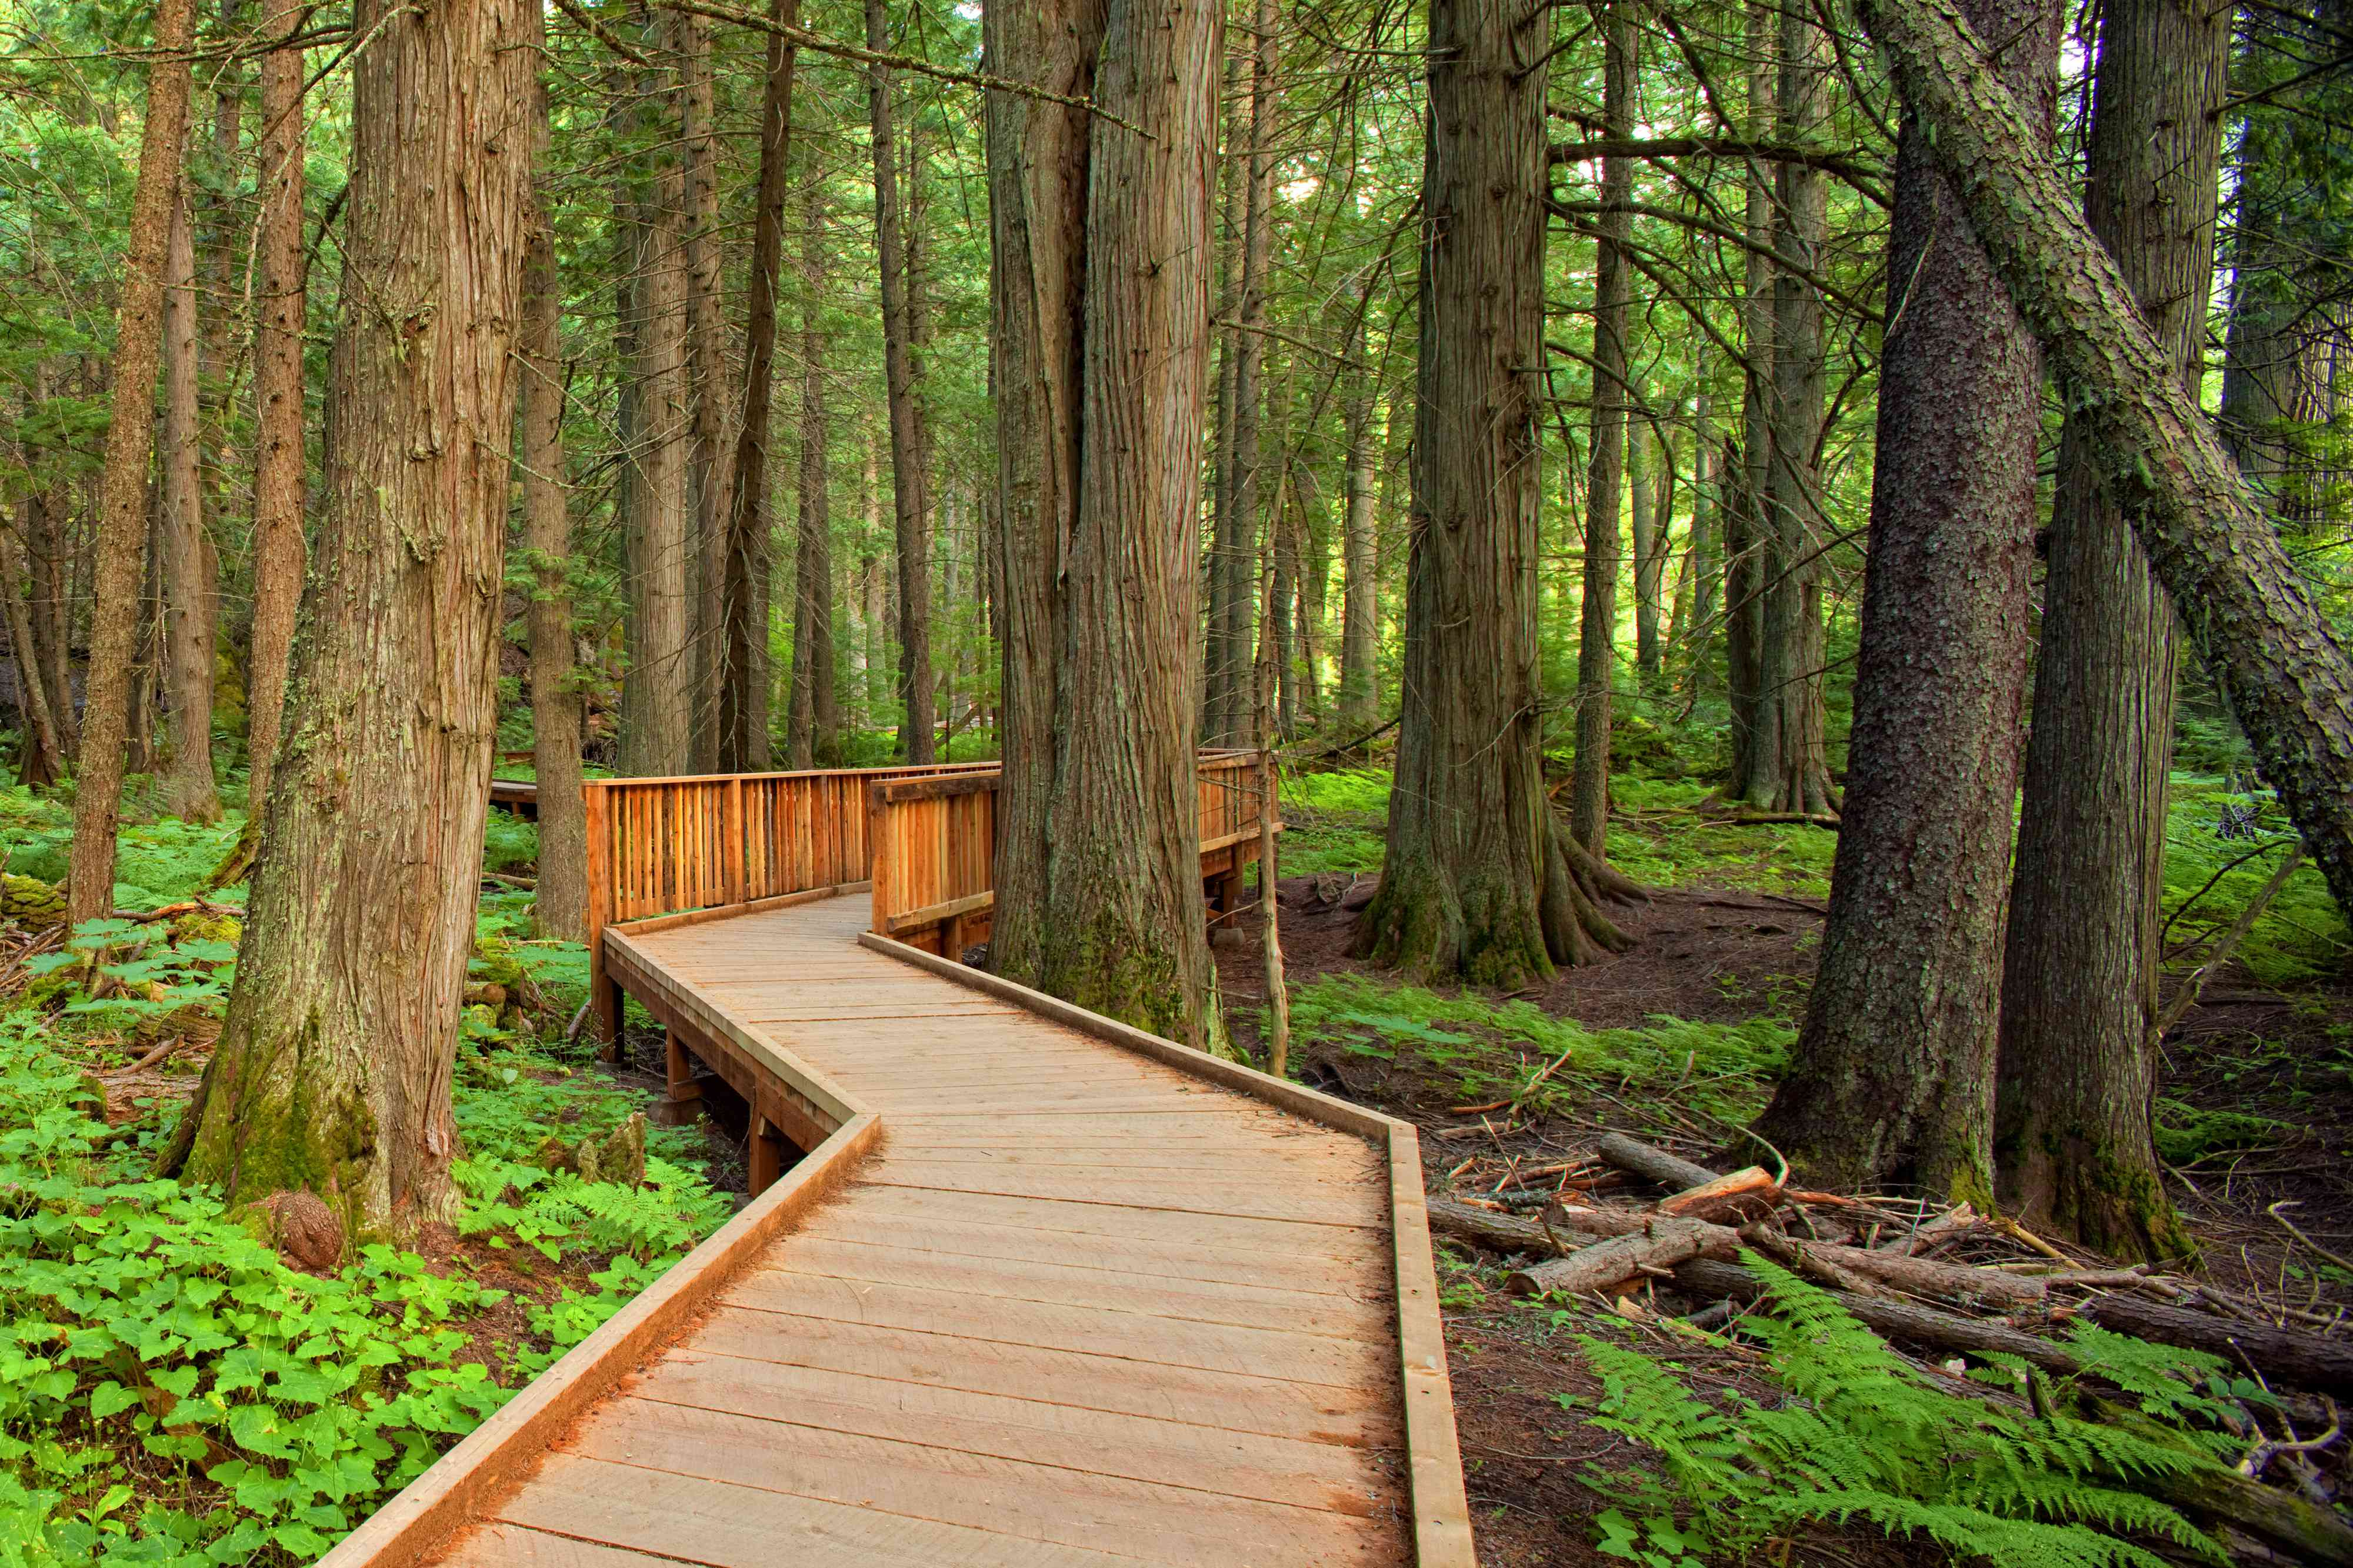 Trail of the Cedars in Glacier National Park, Montana